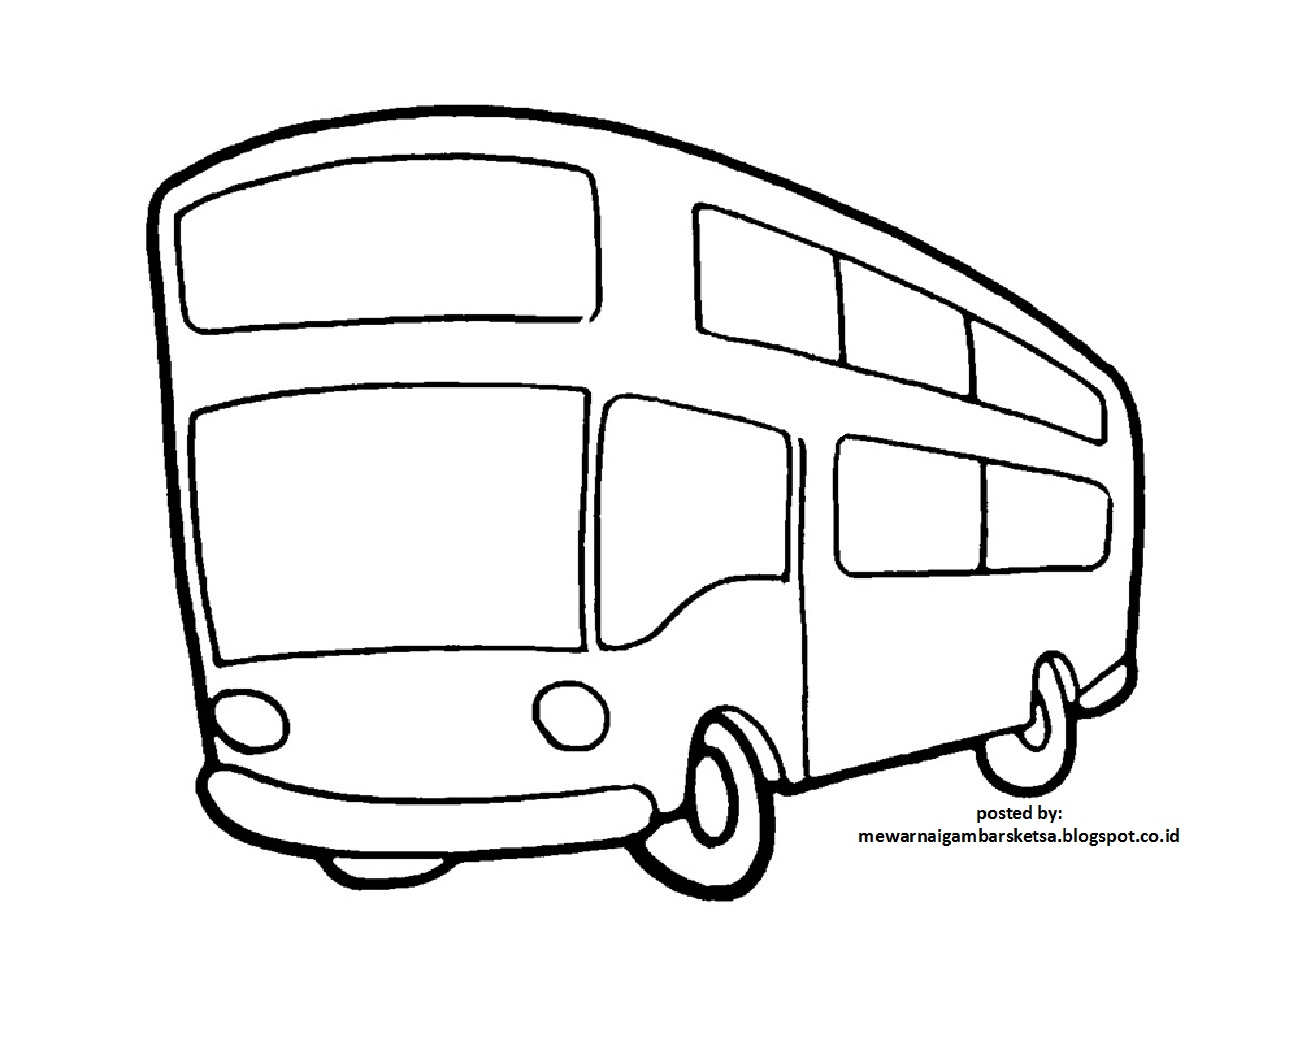 Contoh Sketsa Gambar Sketsa Gambar Transportasi Related Keywords Suggestions Sketsa